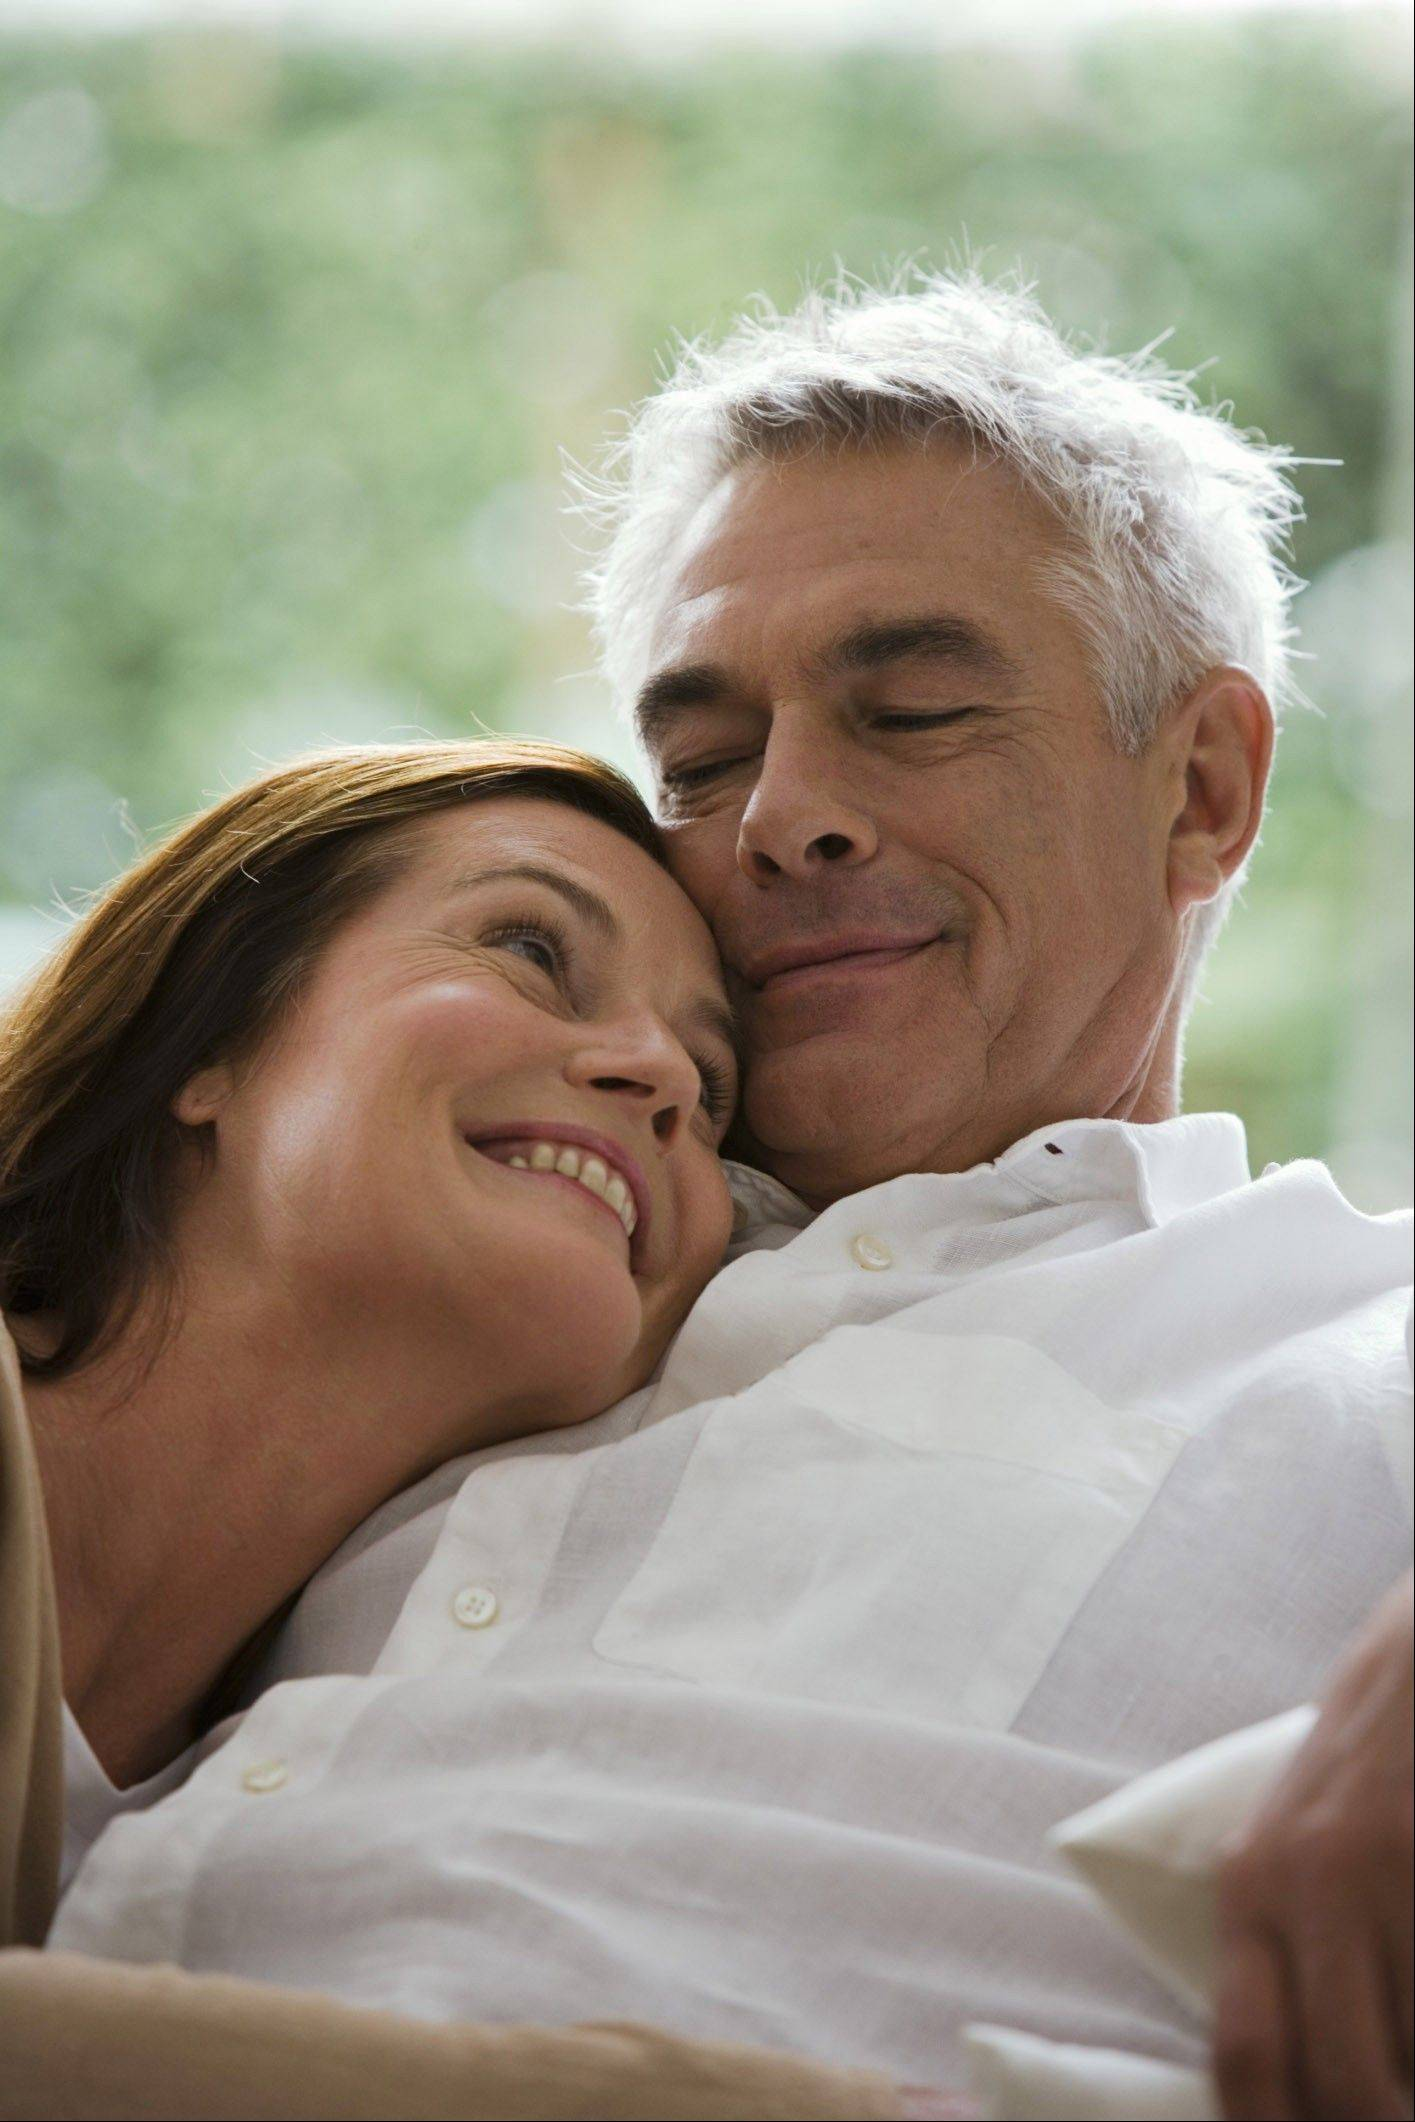 Studies have found a correlation between sexual activity and happiness among people over 65.